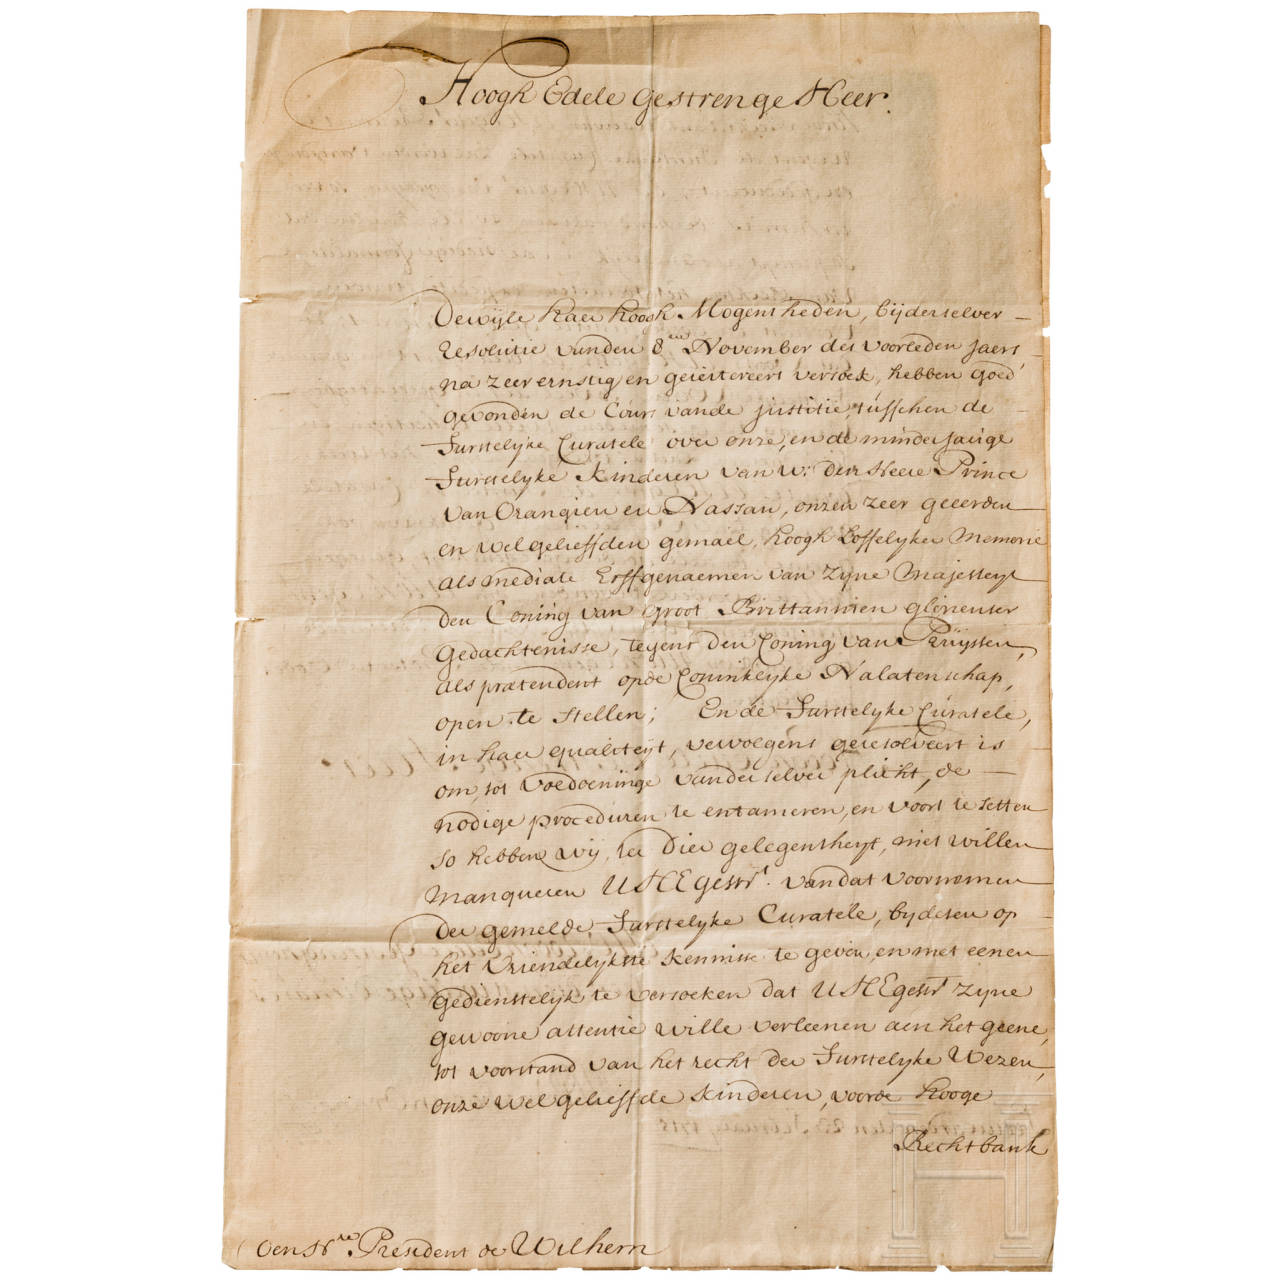 Marie Luise Princess of Orange (1688-1765) - Letter with signature, Leeuwarden, 23 February 1715